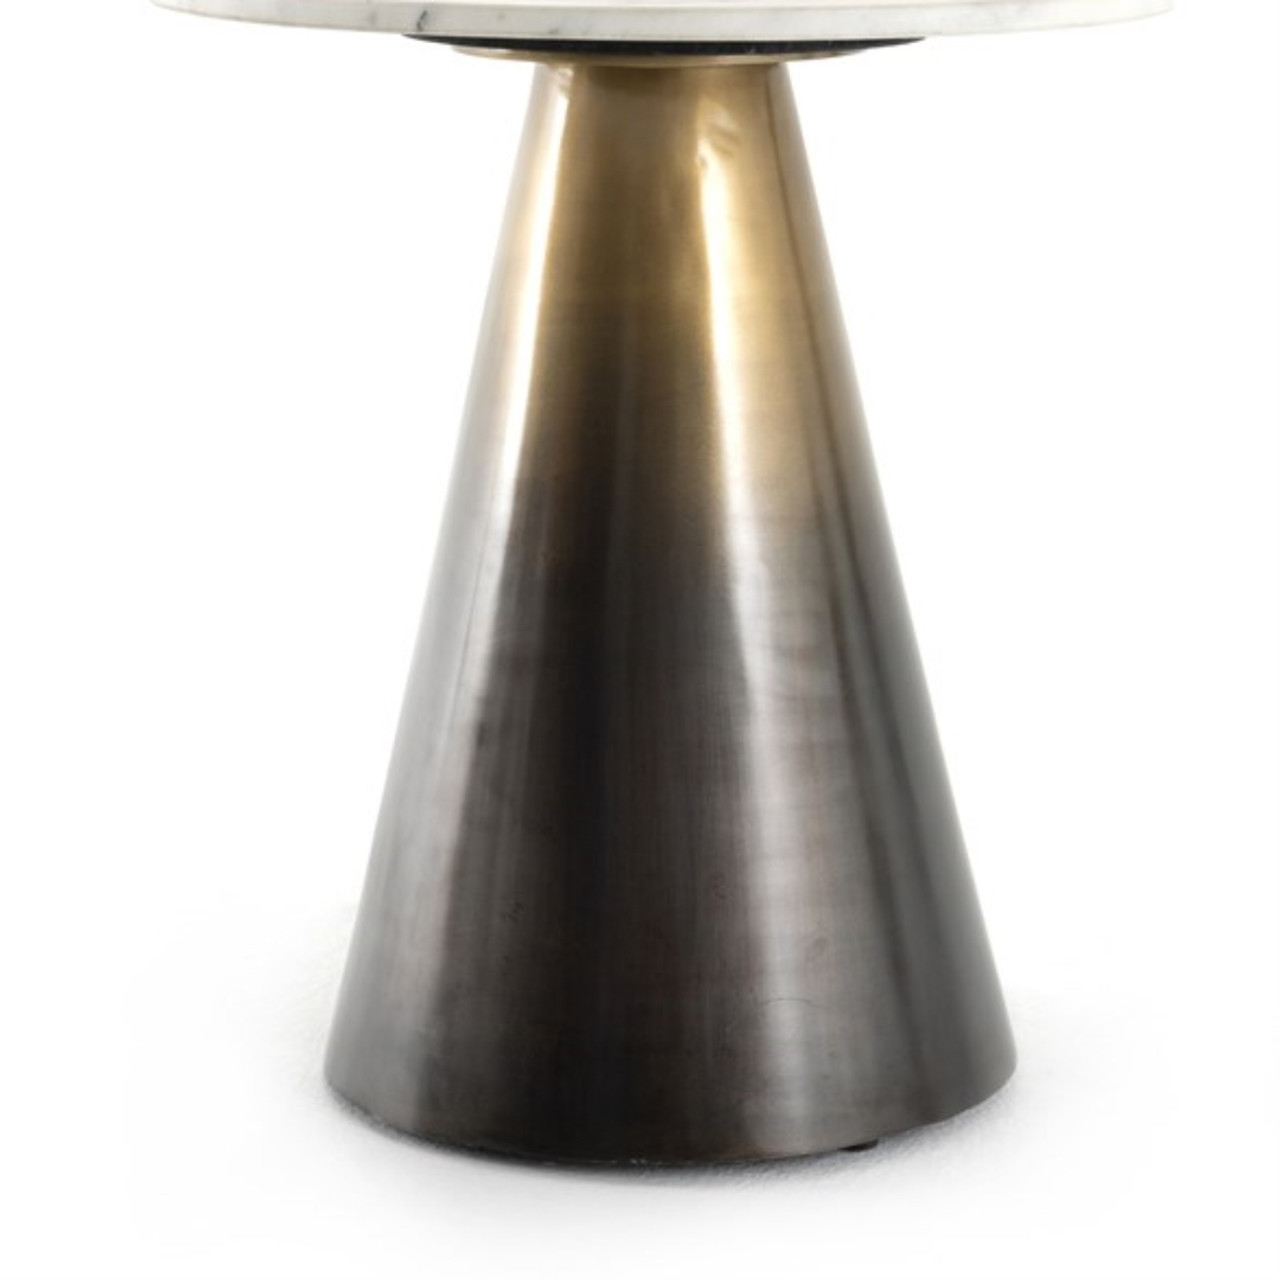 Are End Table - Ombre Antique Brass